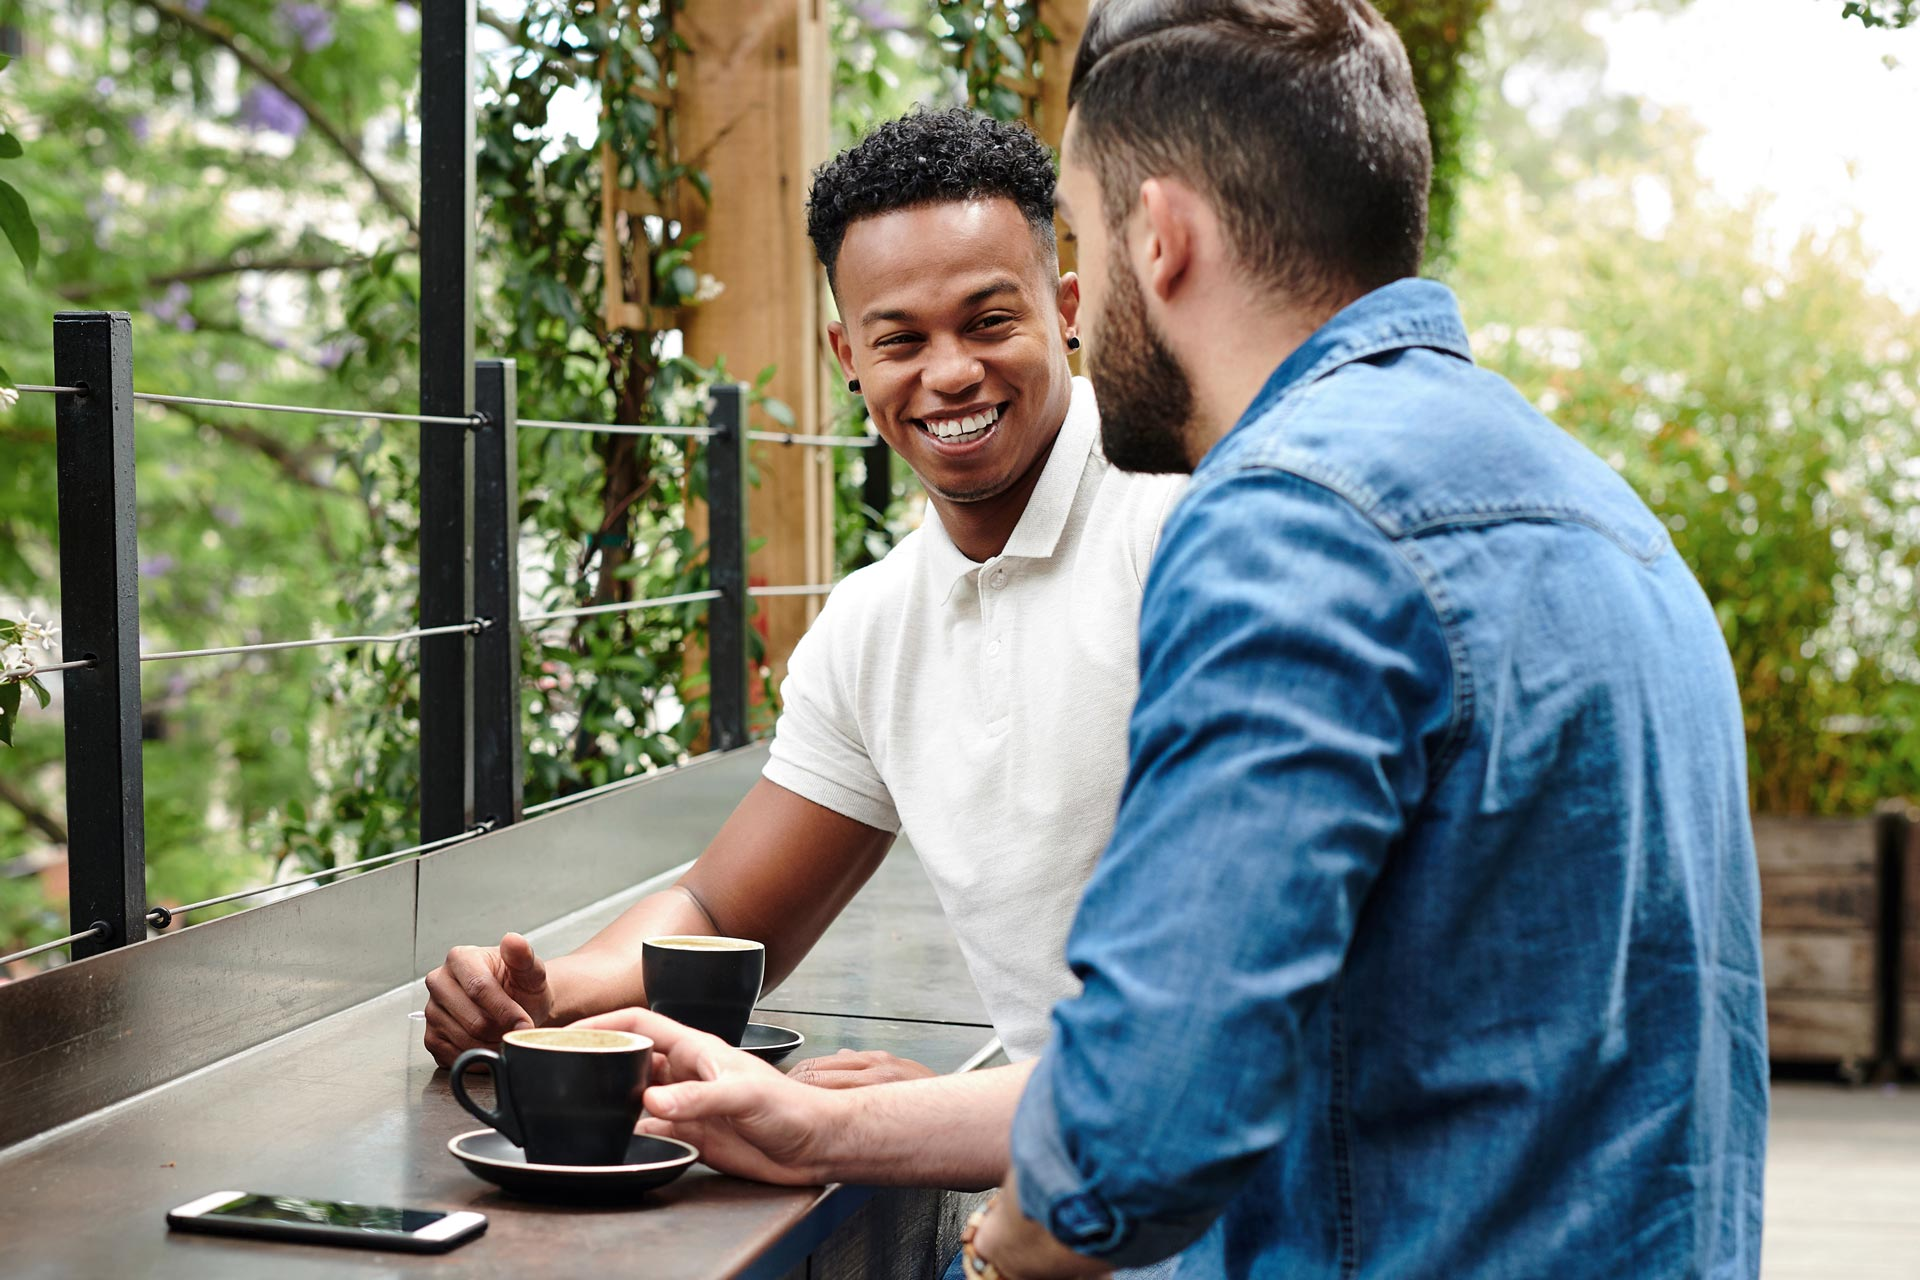 Two people sharing coffee and conversation